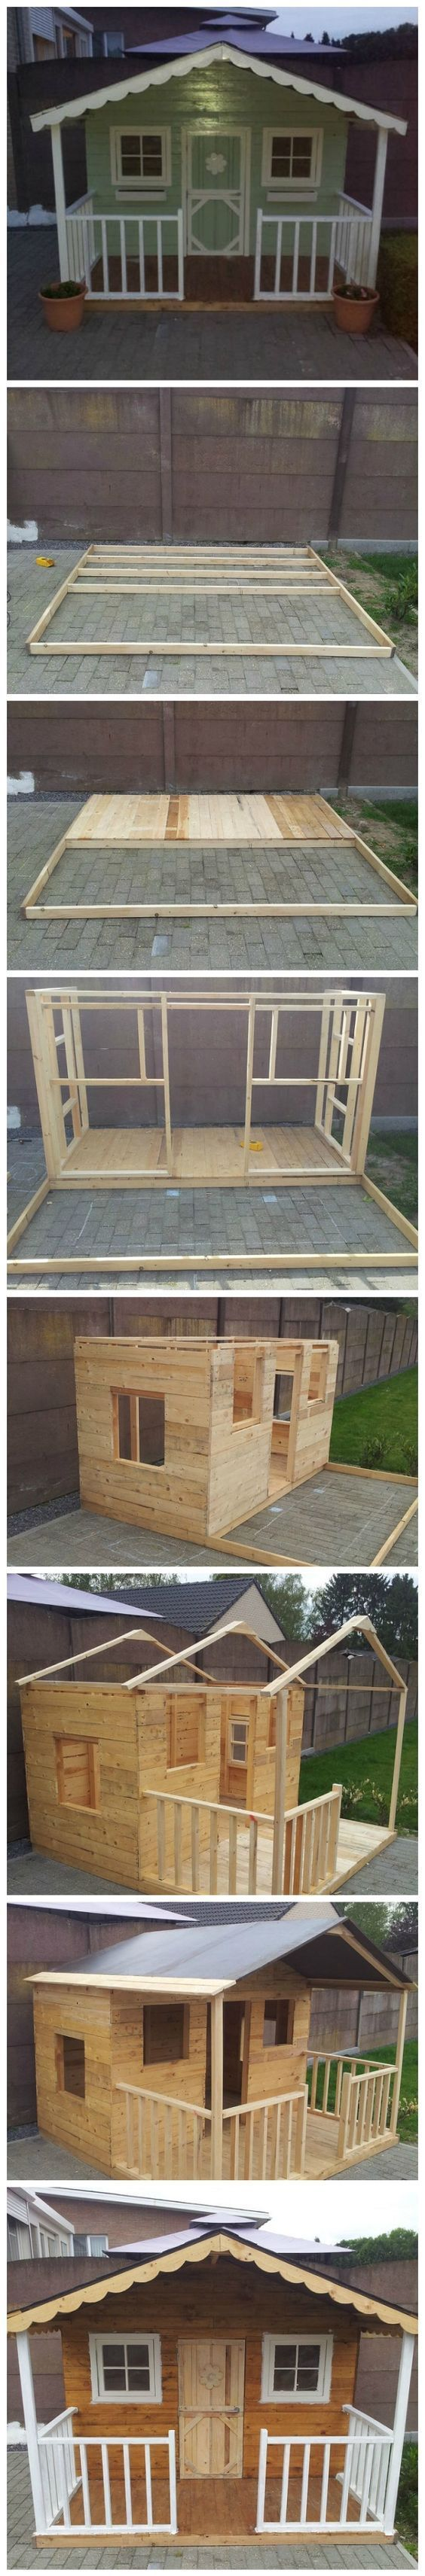 Good how to for possible shed, just build to a little larger scale...DIY Pallets Playhouse #playhousebuildingplans